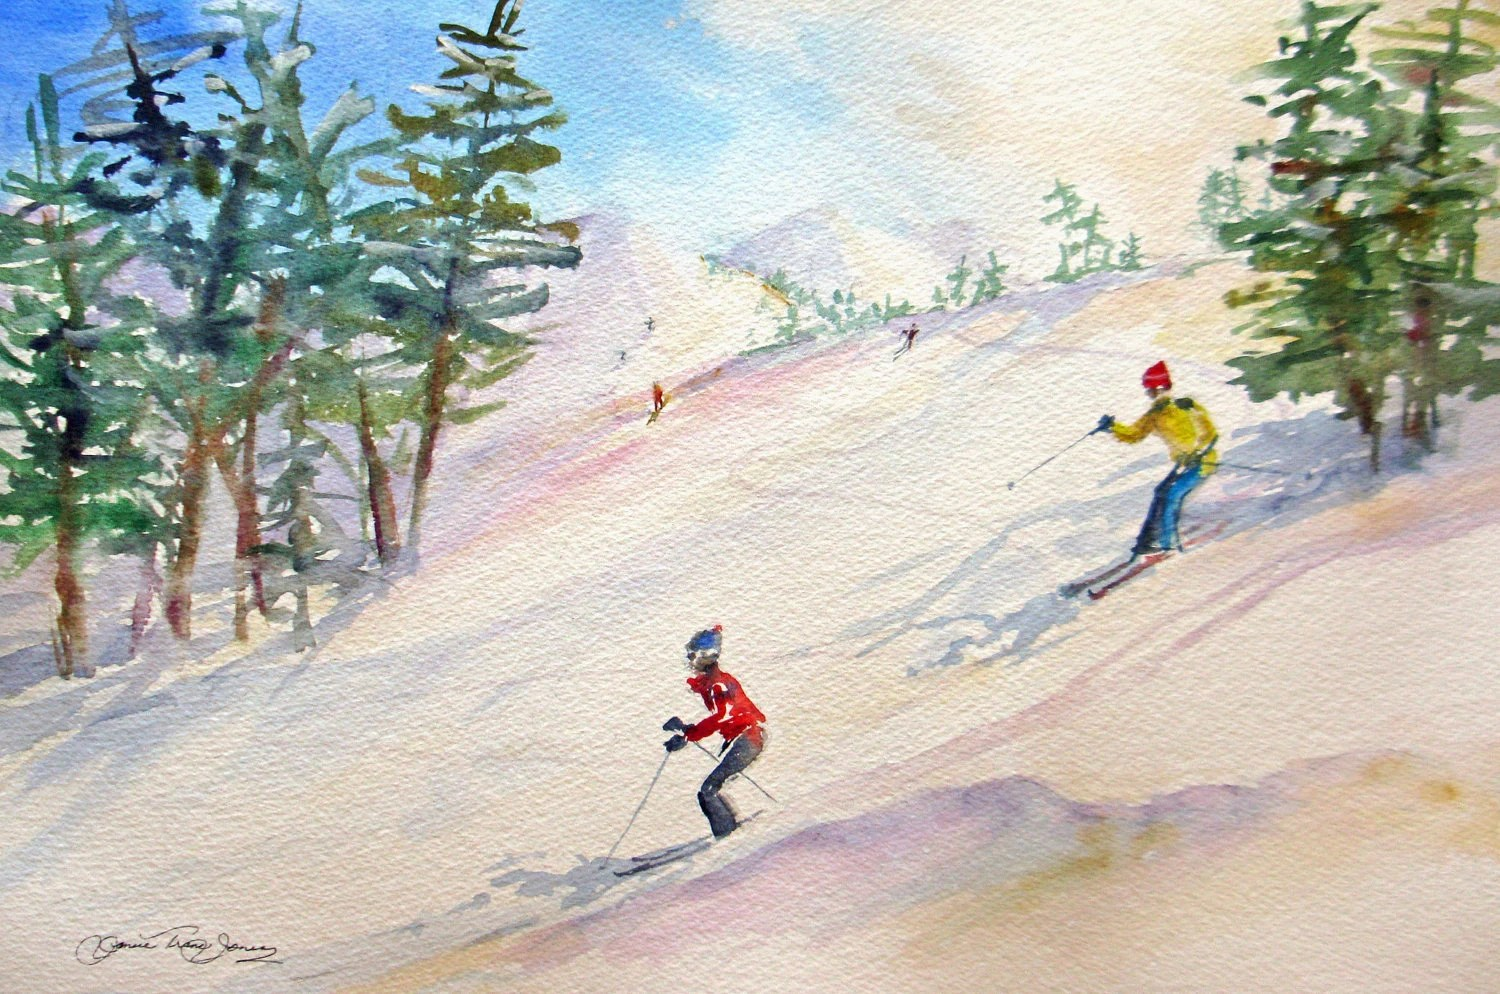 large original watercolor painting skiing snow winter landscape mountains pine trees sports fine art 18 x 24 frame ready - JaniceTraneJones